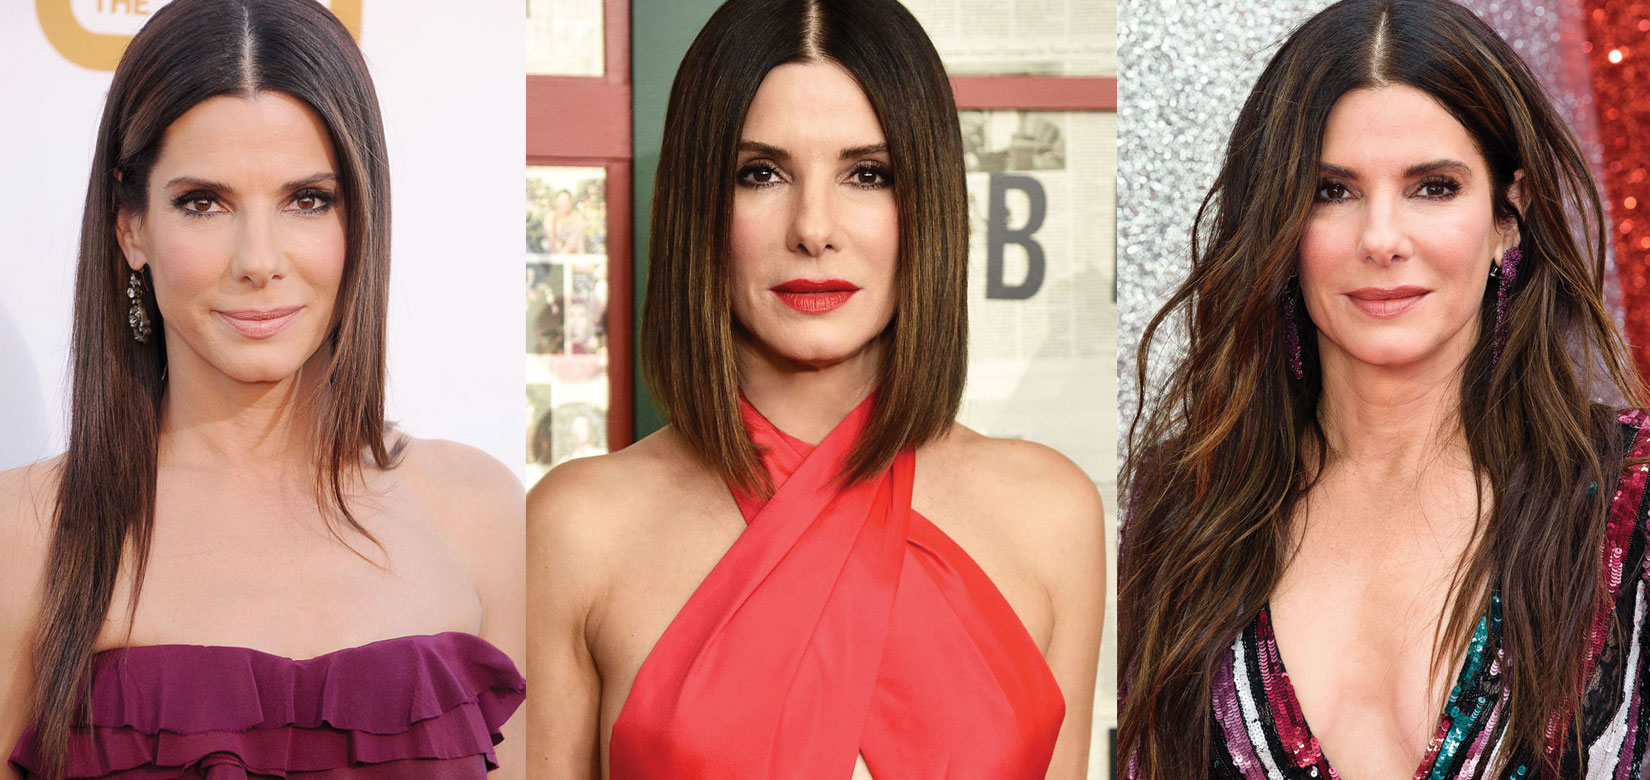 Sandra Bullock Plastic Surgery Before and After 2020